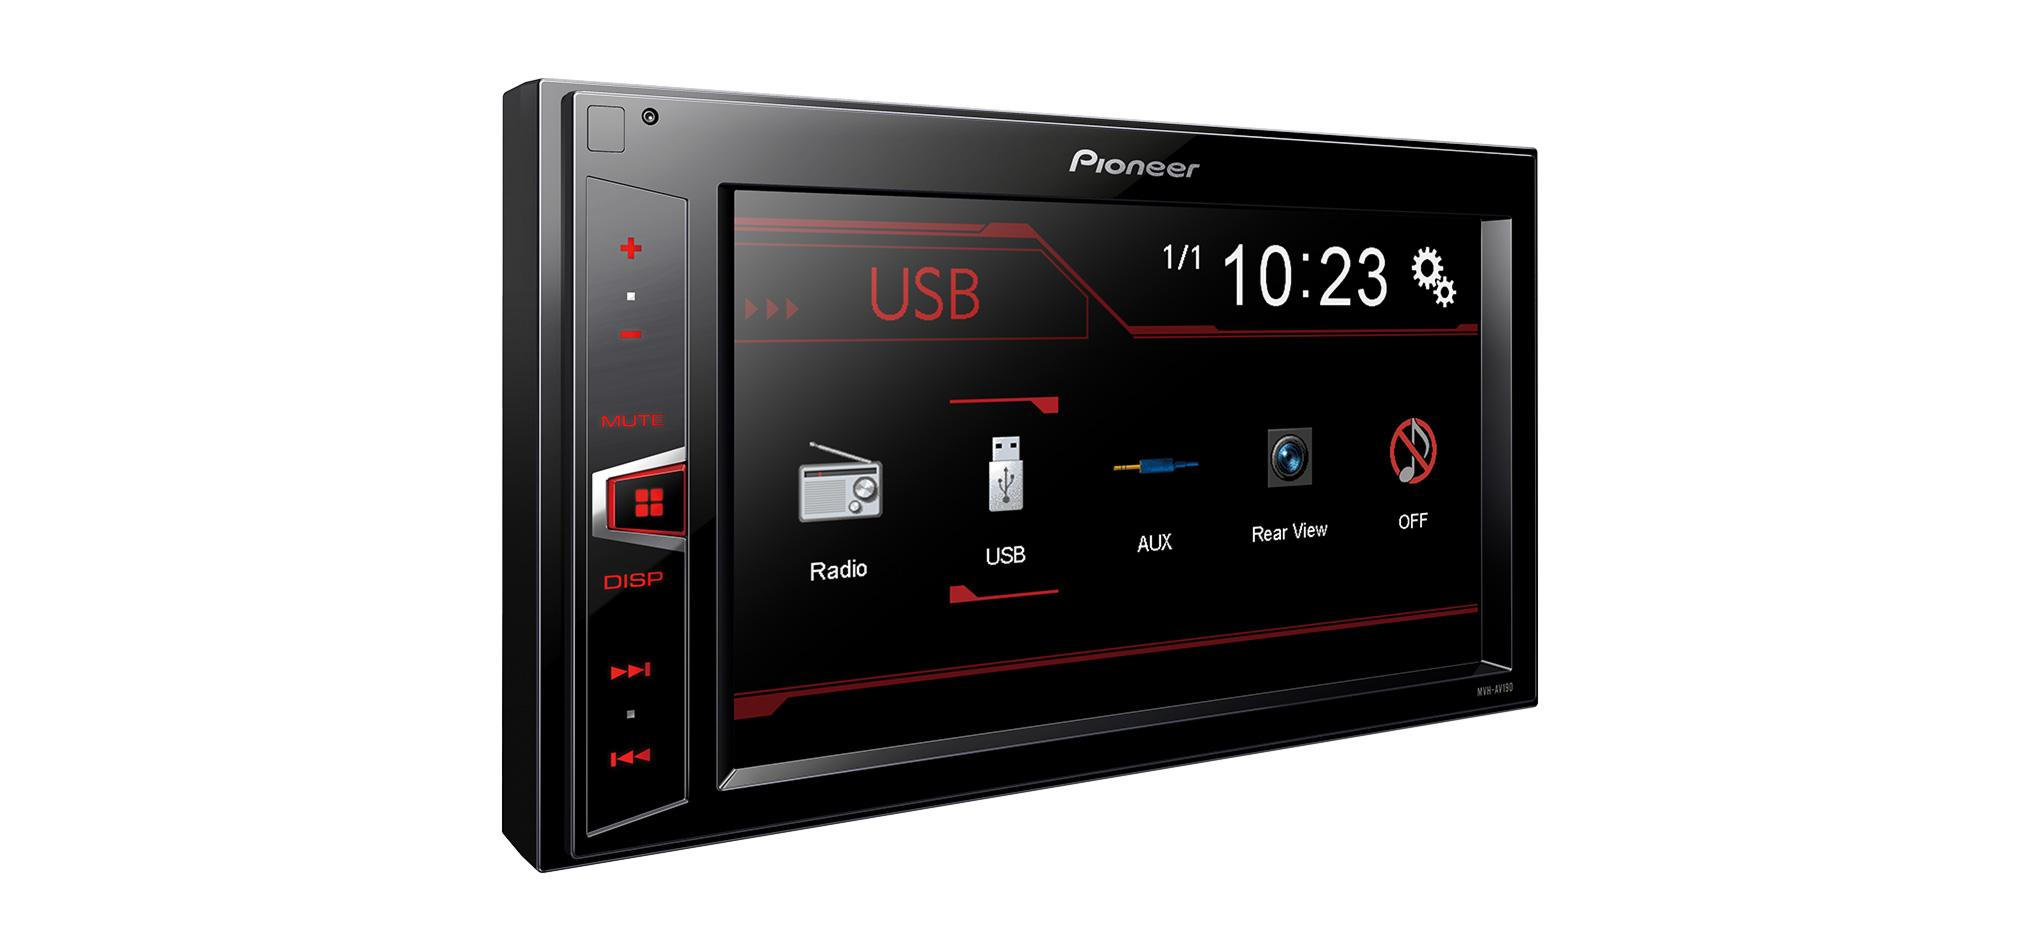 mvh av190 autoradio pioneer cd usb aux tuner ecran 2. Black Bedroom Furniture Sets. Home Design Ideas